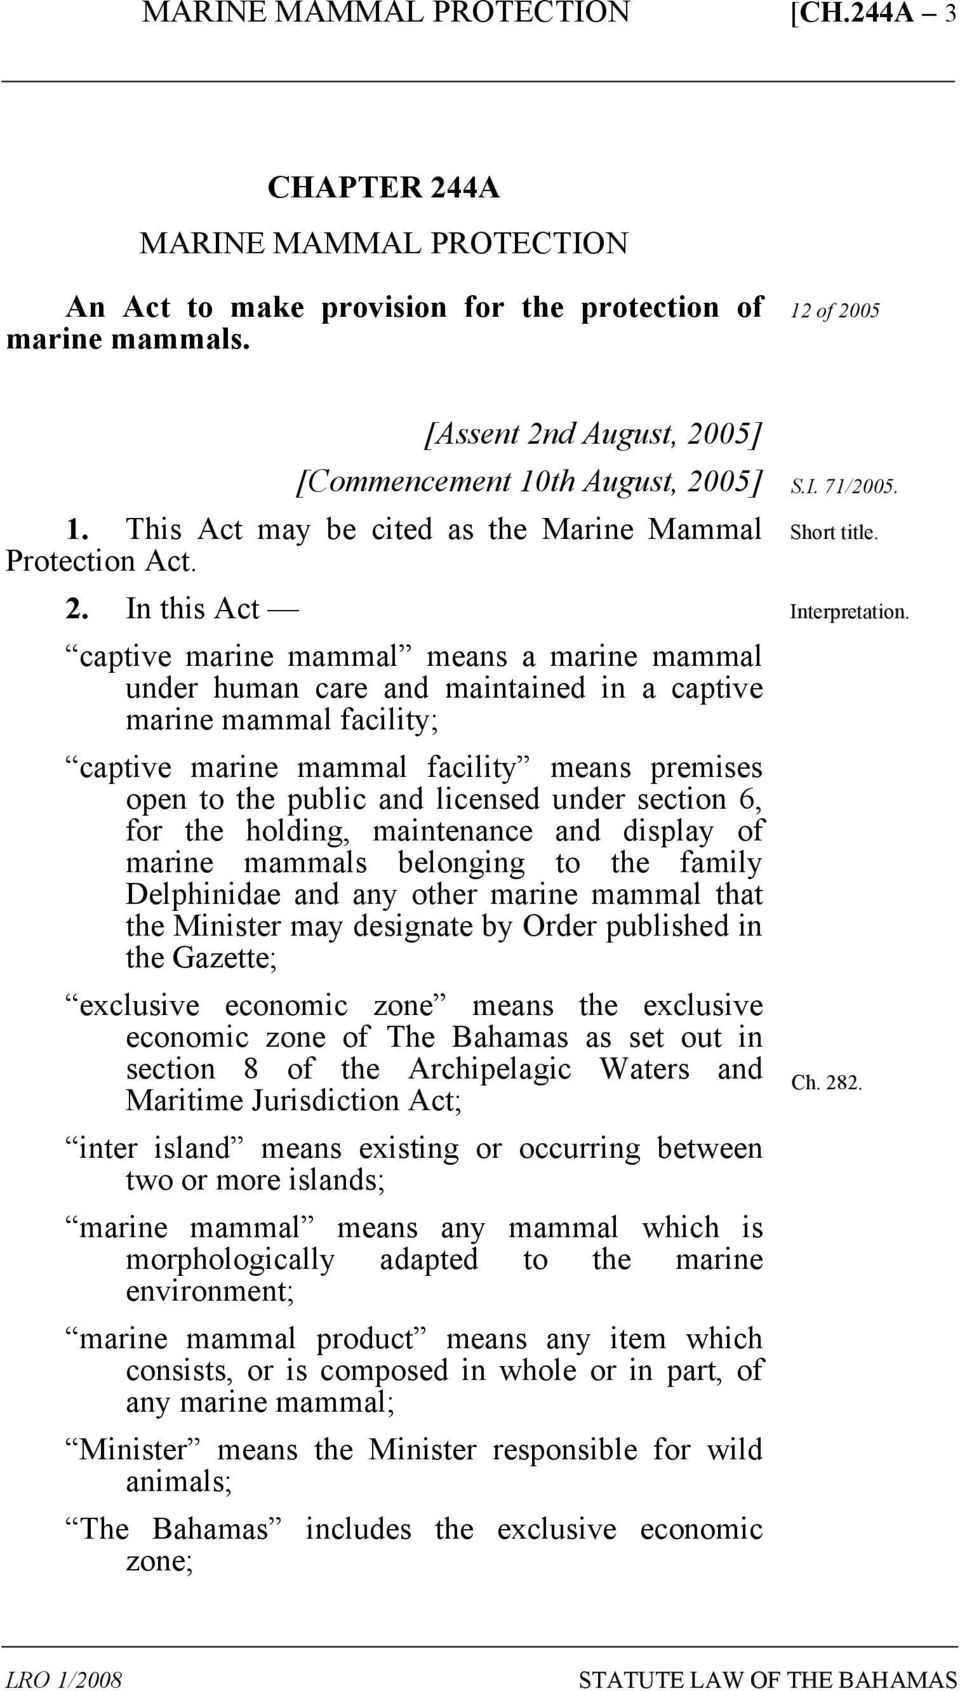 In this Act captive marine mammal means a marine mammal under human care and maintained in a captive marine mammal facility; captive marine mammal facility means premises open to the public and